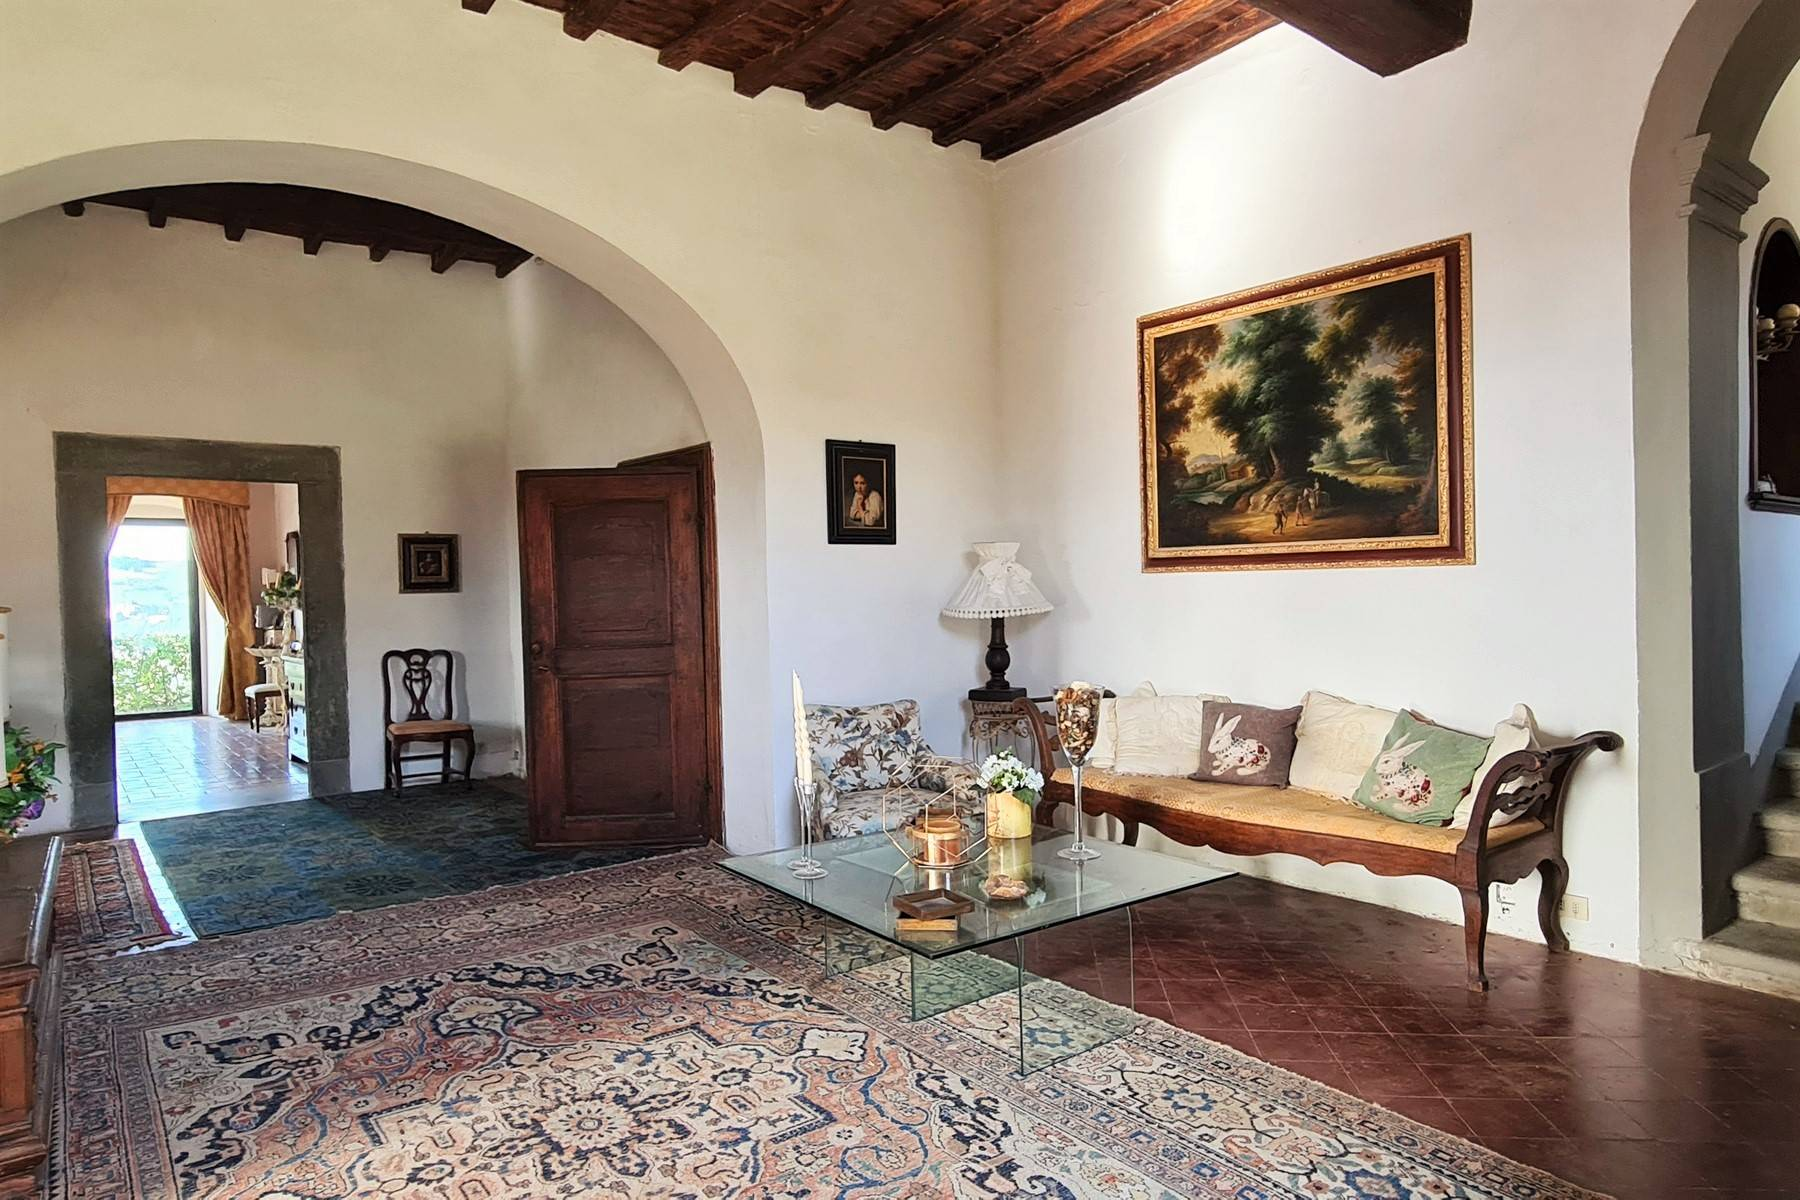 Enchanting historical villa in the heart of Chianti - 8